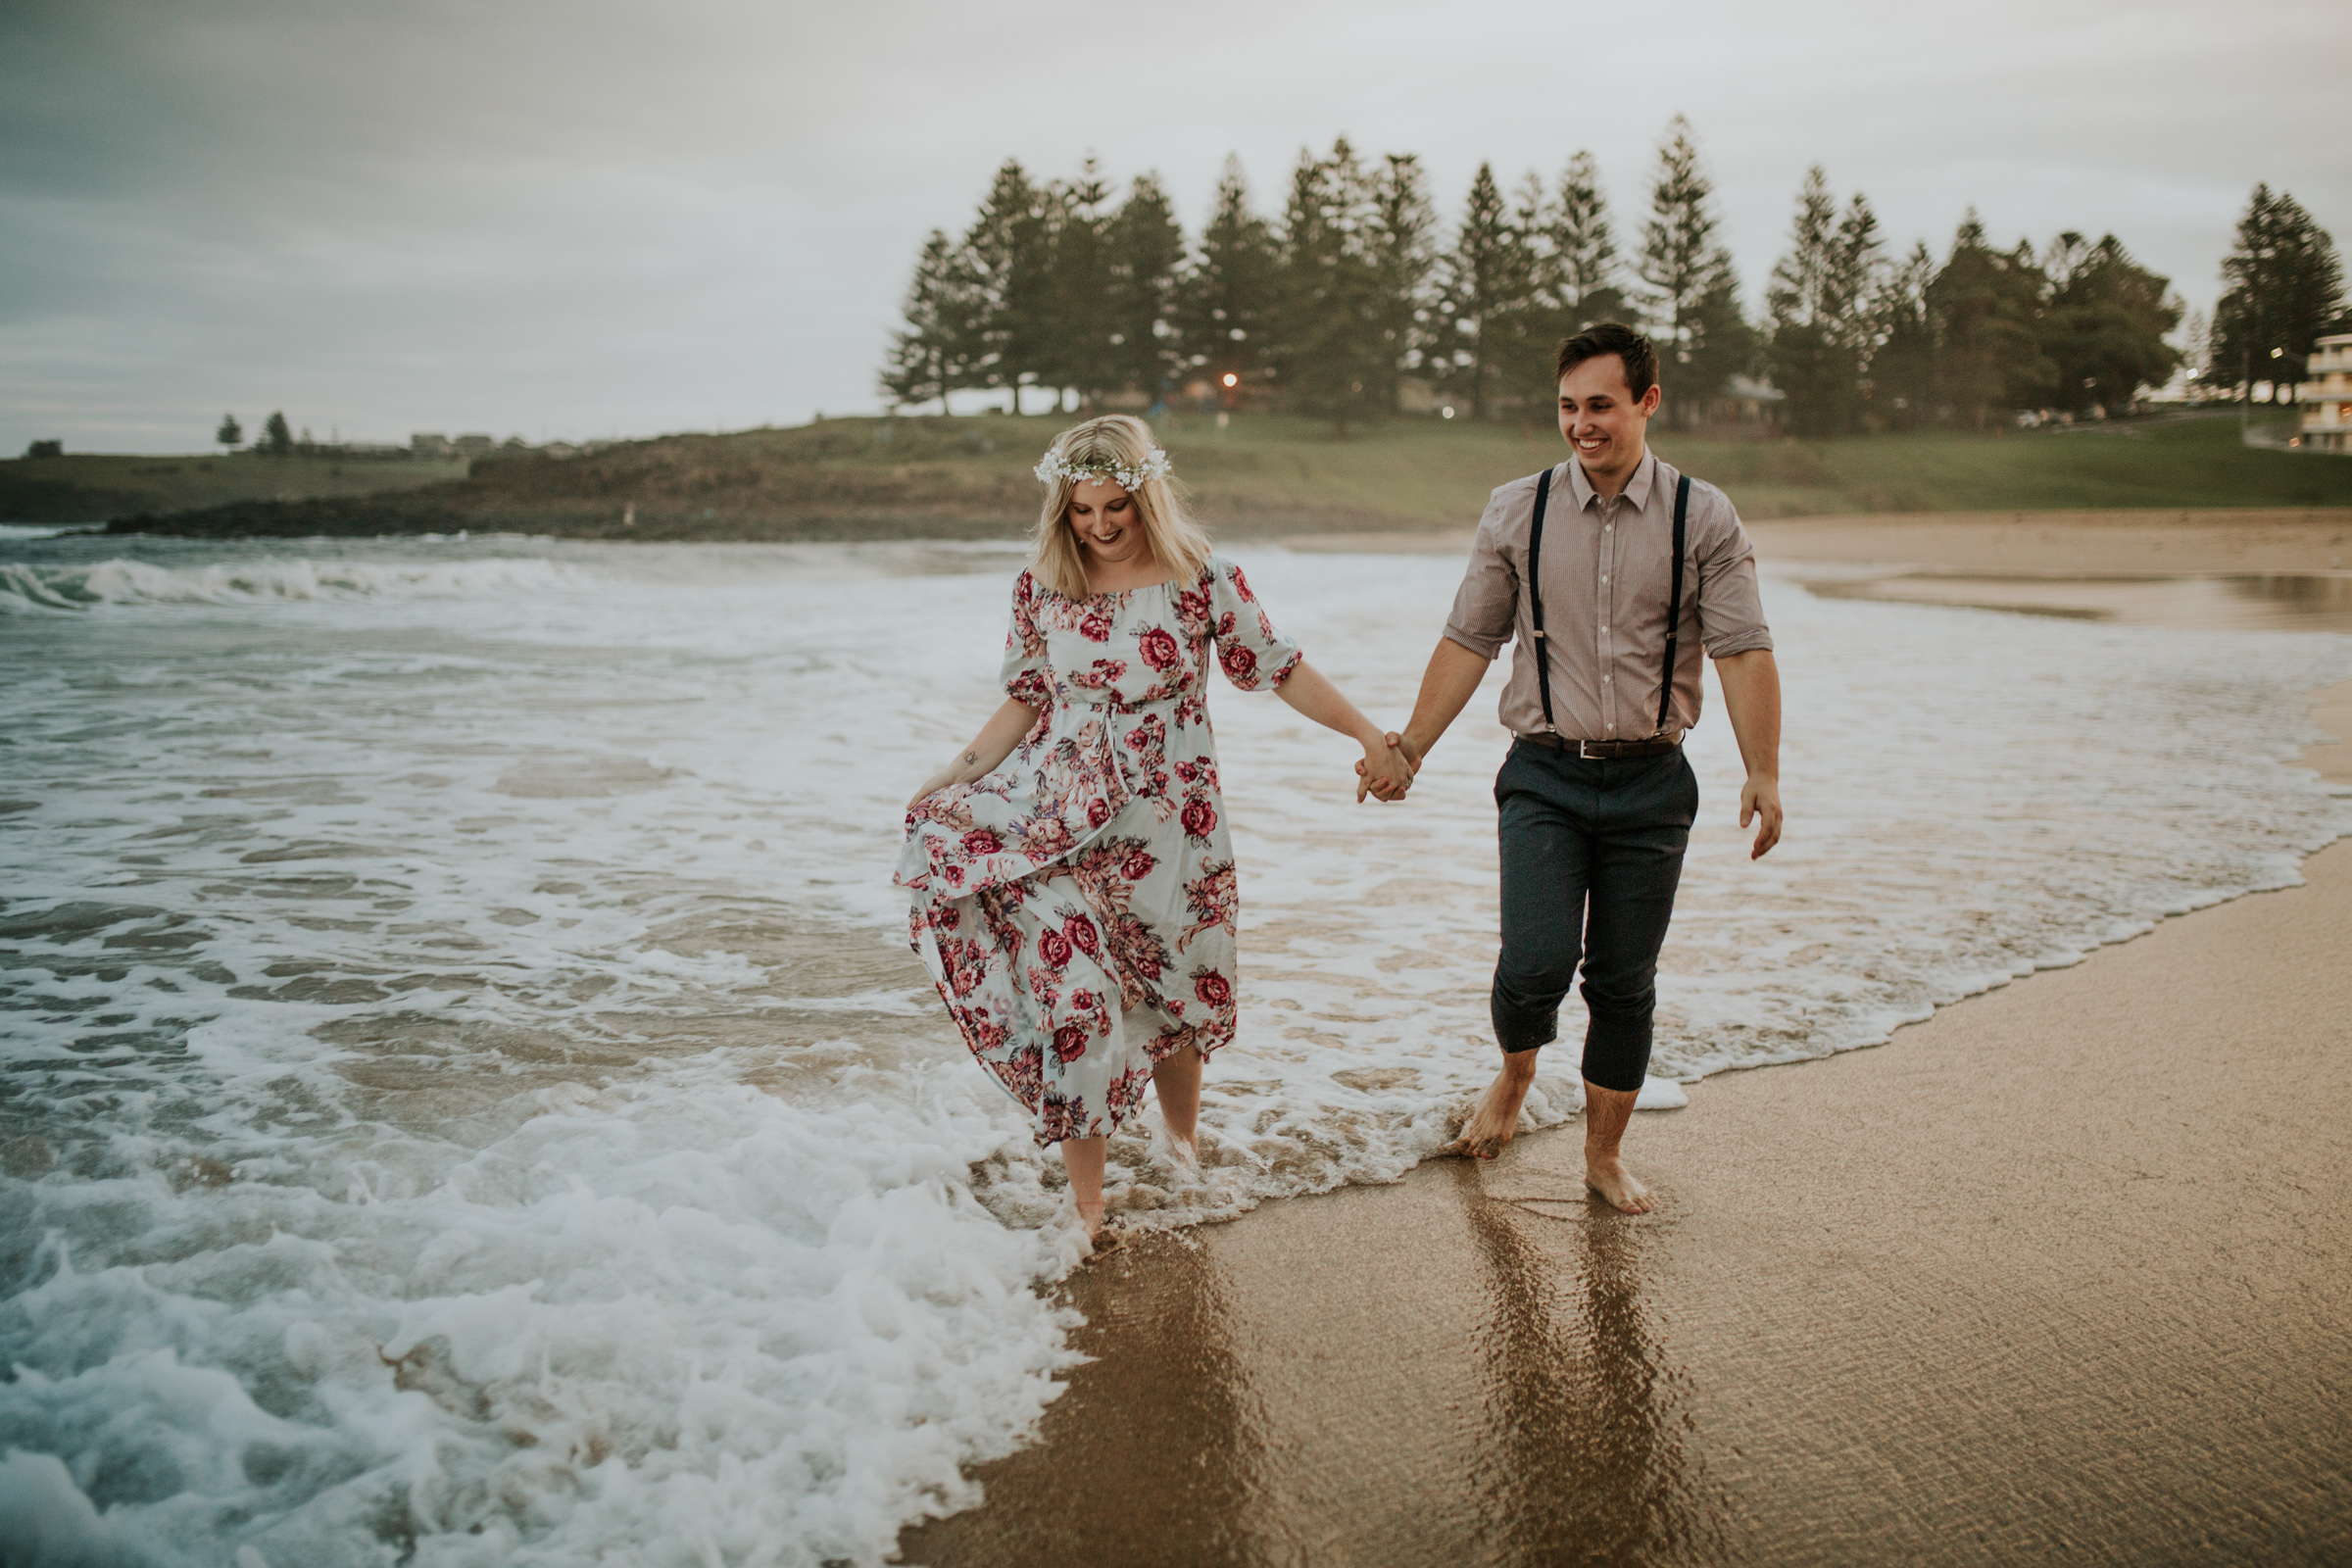 Ebony+Aj+Engagement+Kiama+Beach-17.jpg